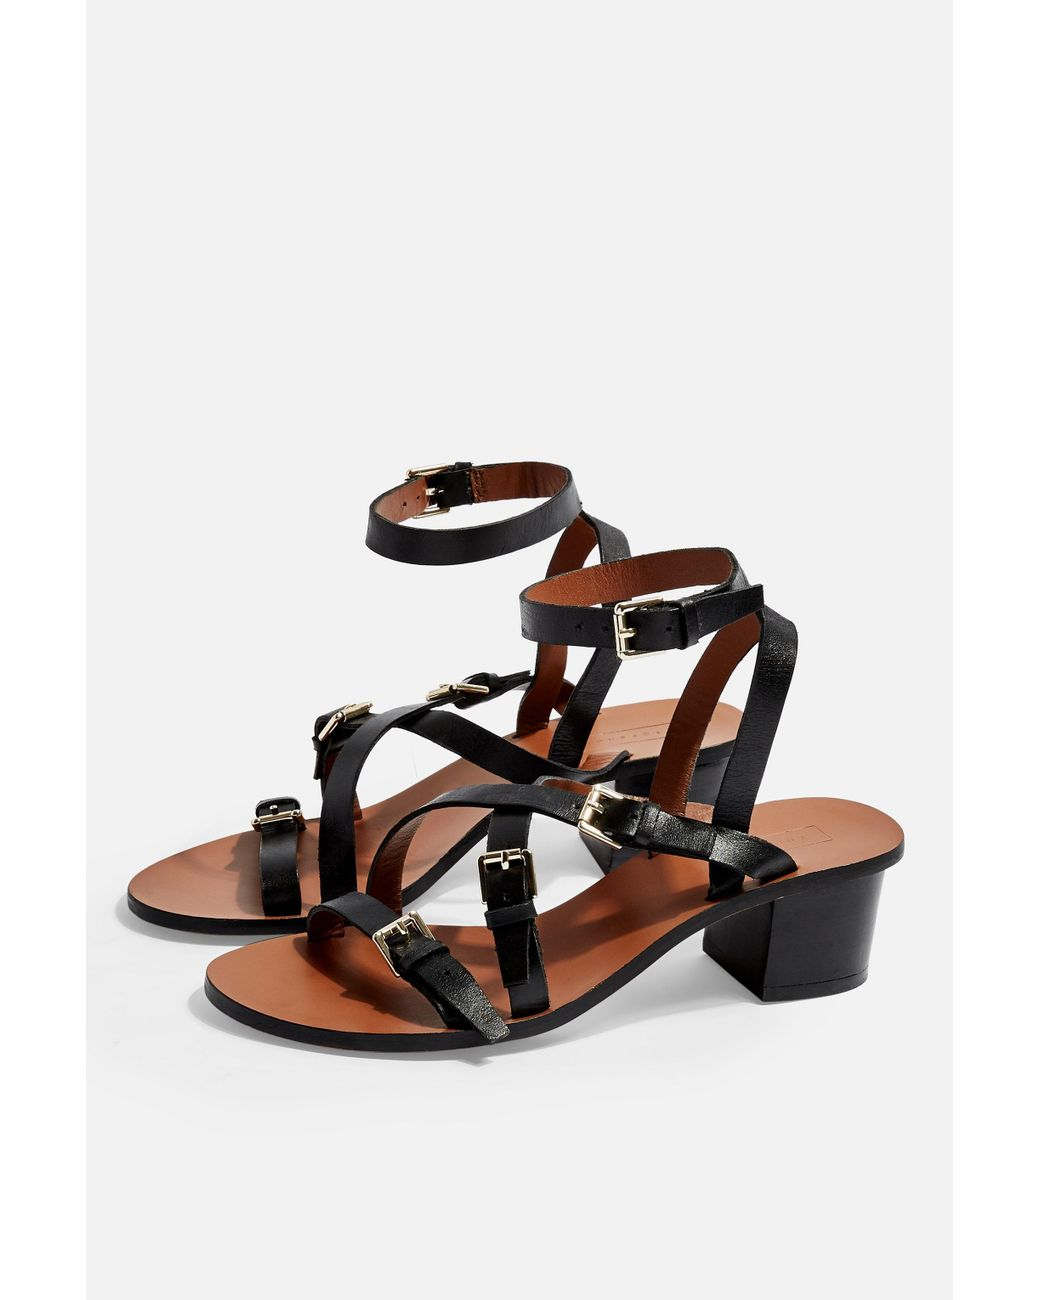 Lyst Black Virgo Sandals Buckle Topshop In mnN0wOv8